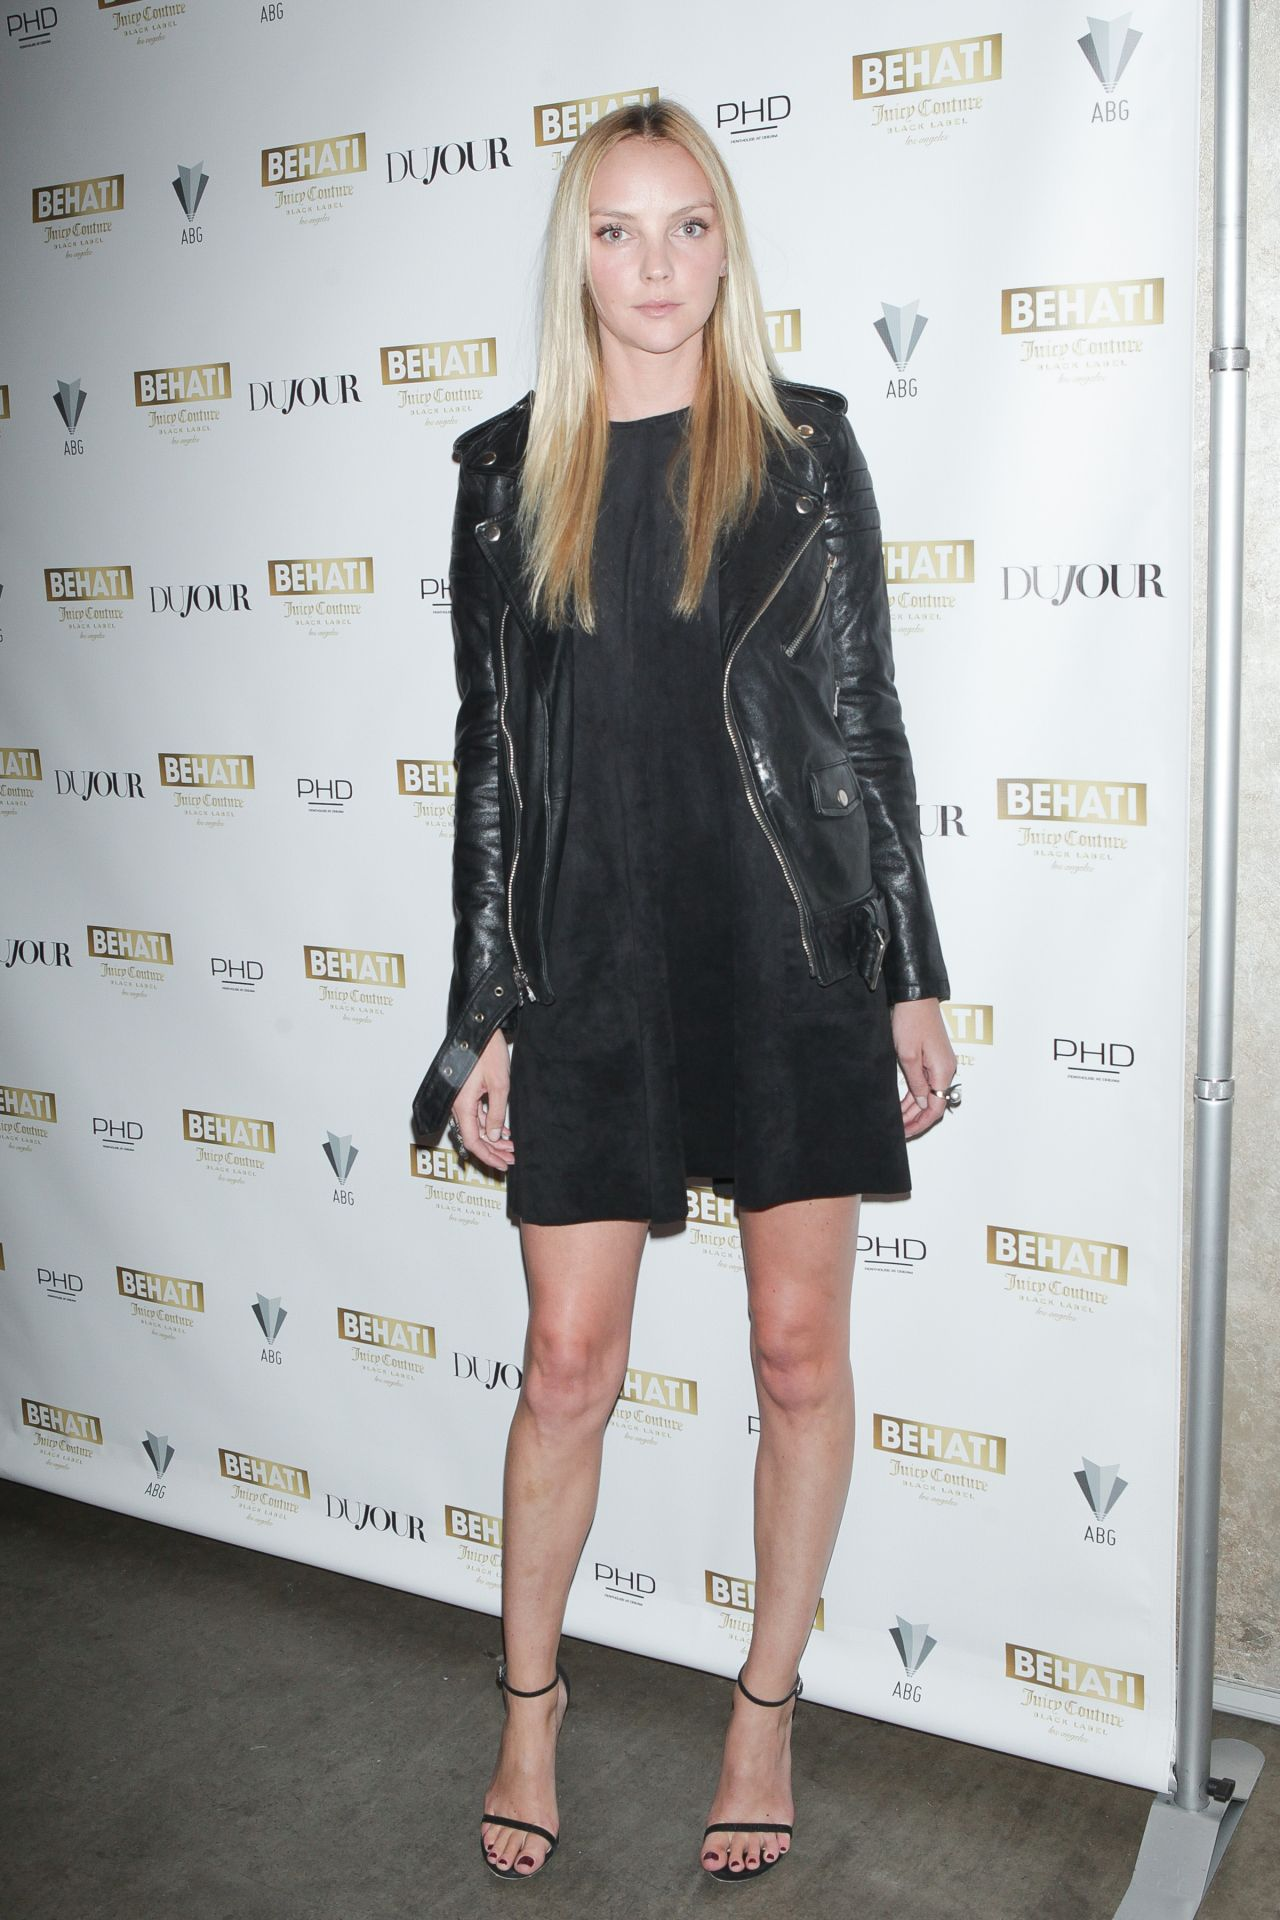 Heather Marks For Elle France: Behati X Juicy Couture Launch In New York